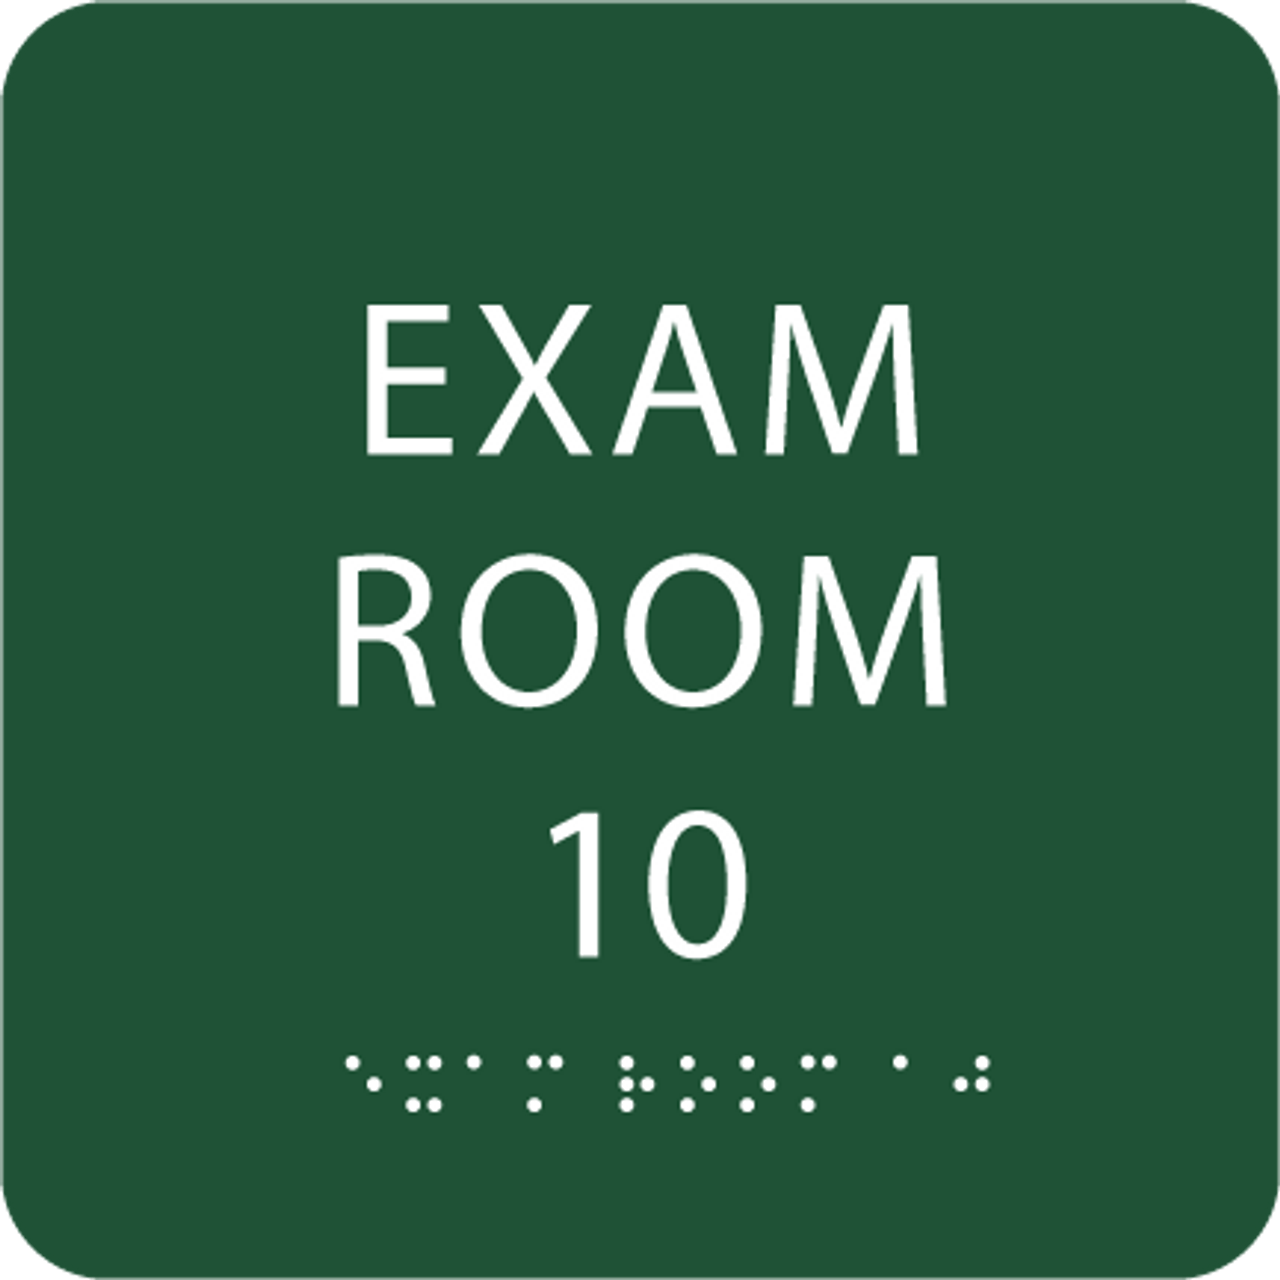 Green Exam Room 10 Sign w/ ADA Braille